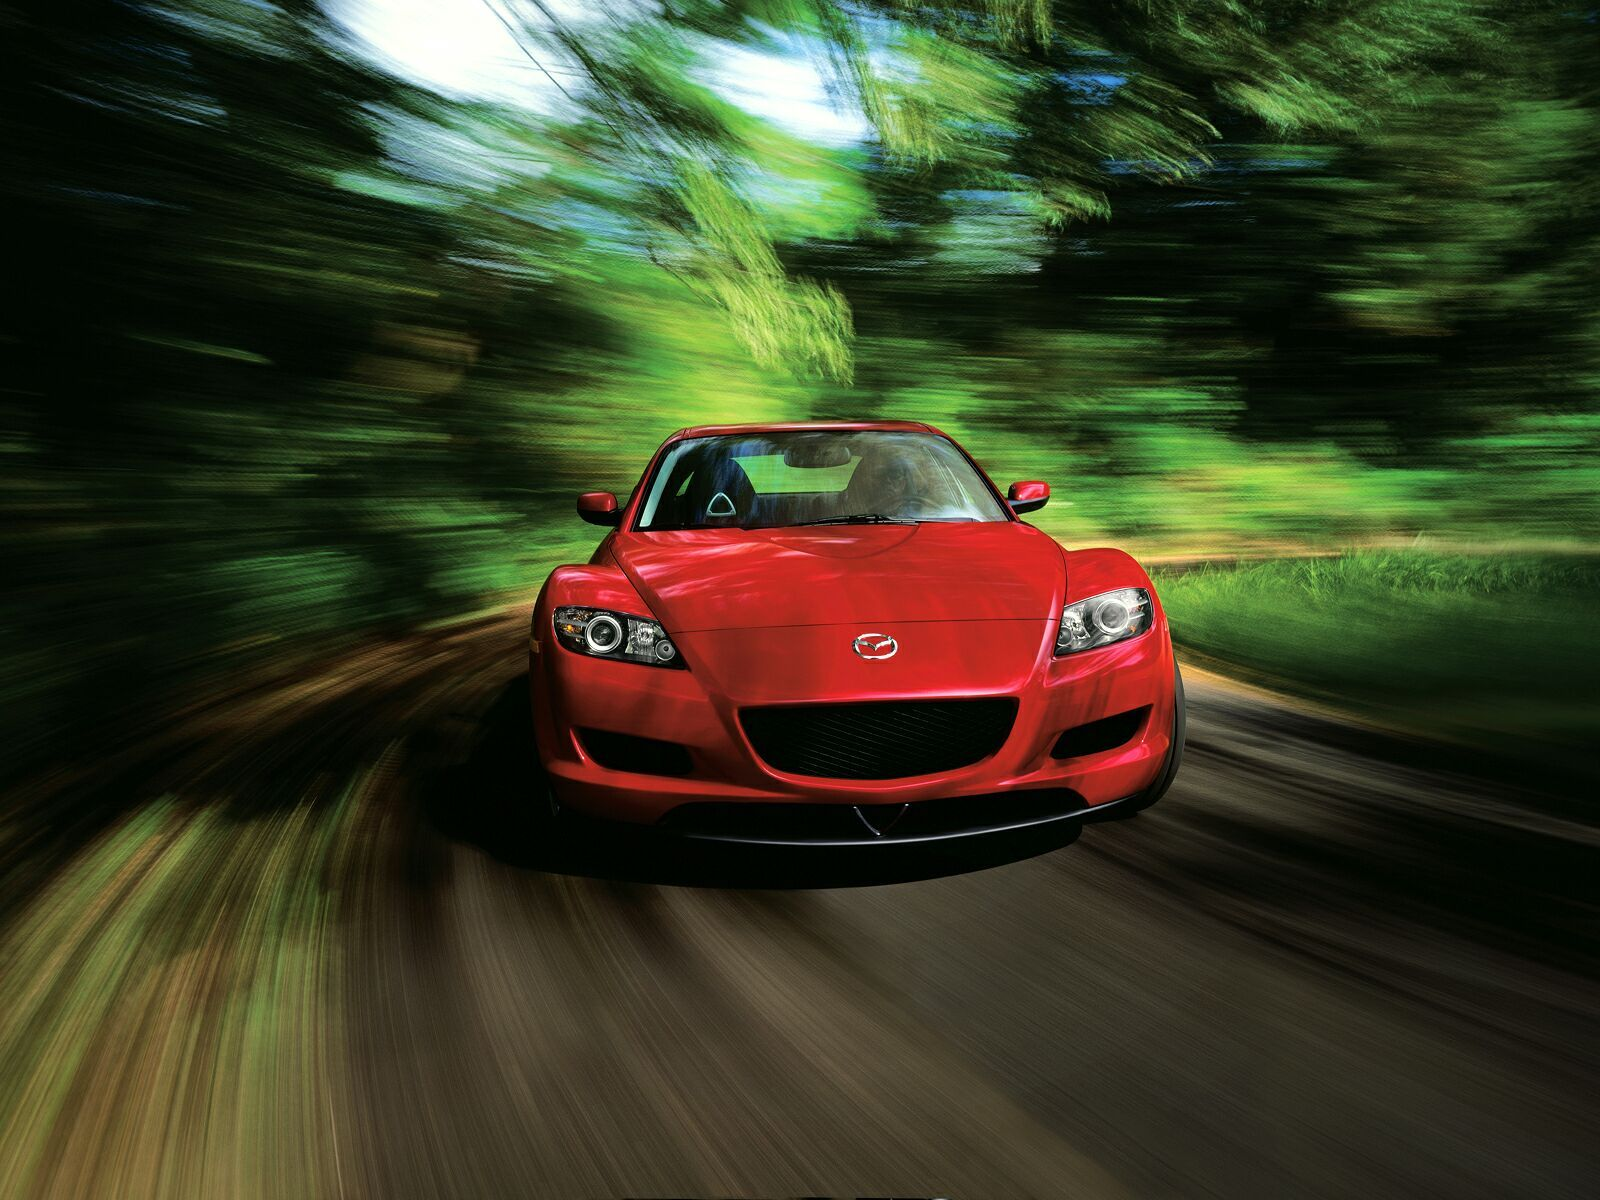 2005 mazda rx-8 review - top speed